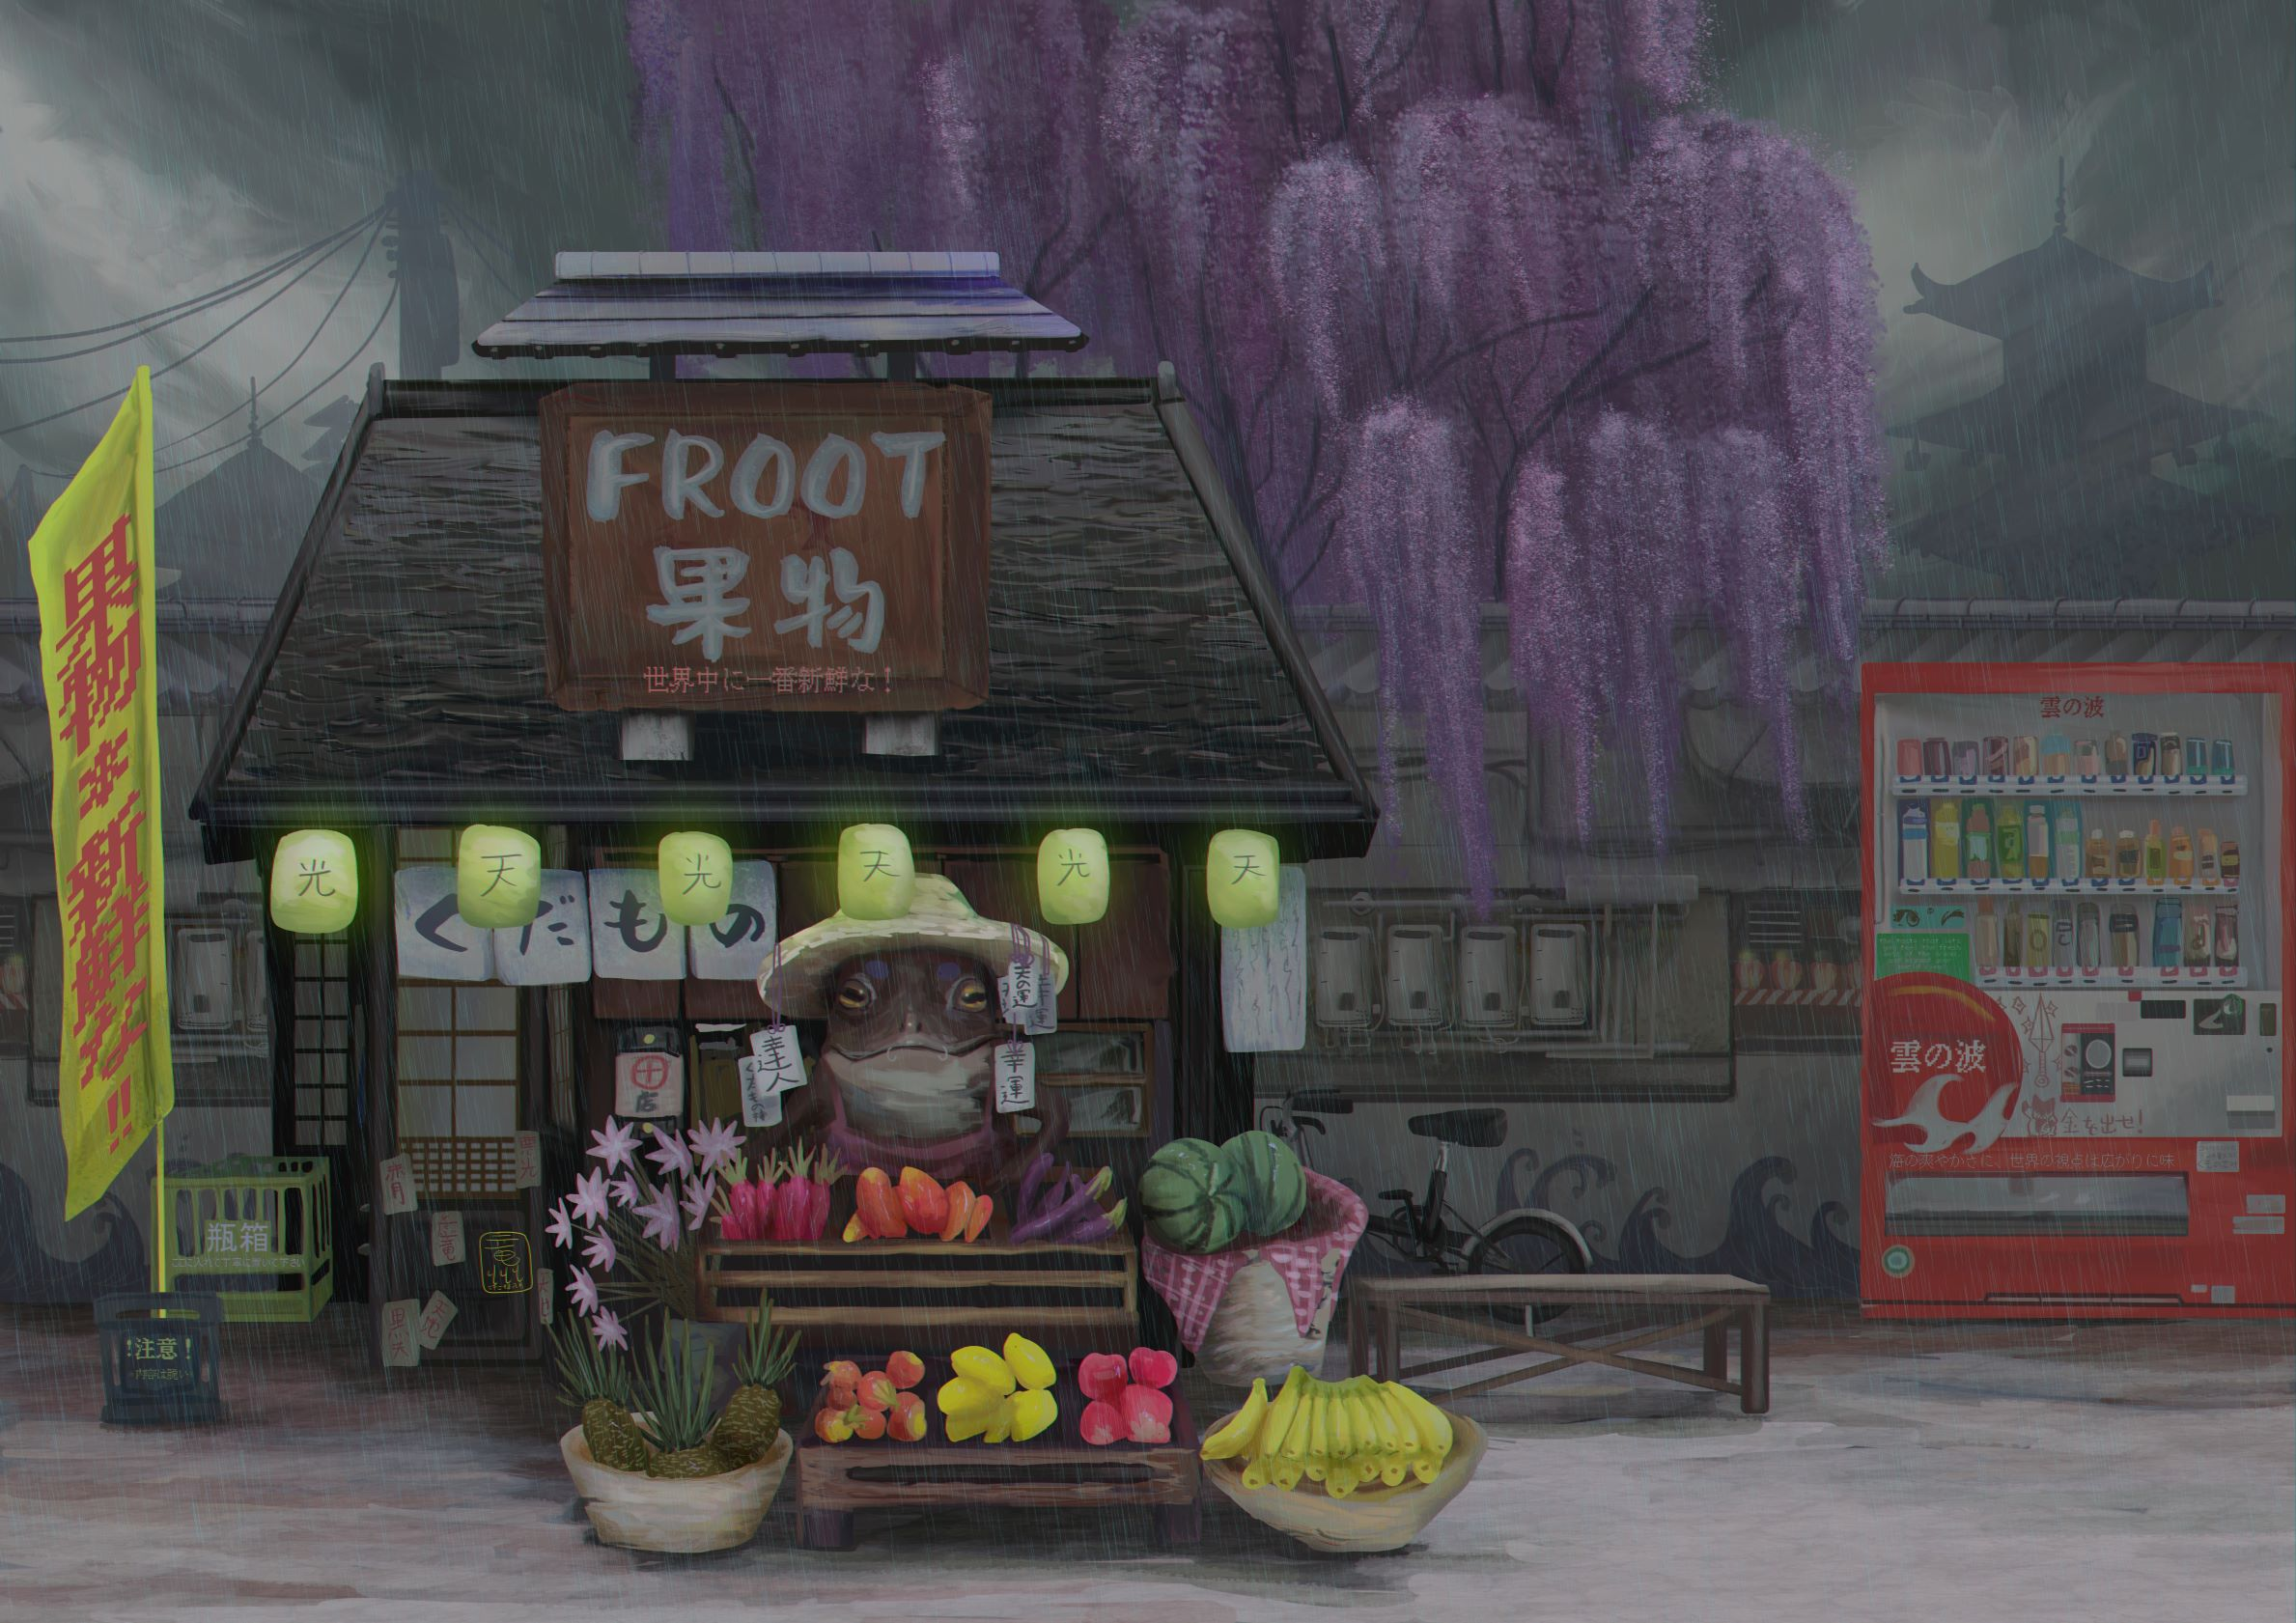 Froot Stand